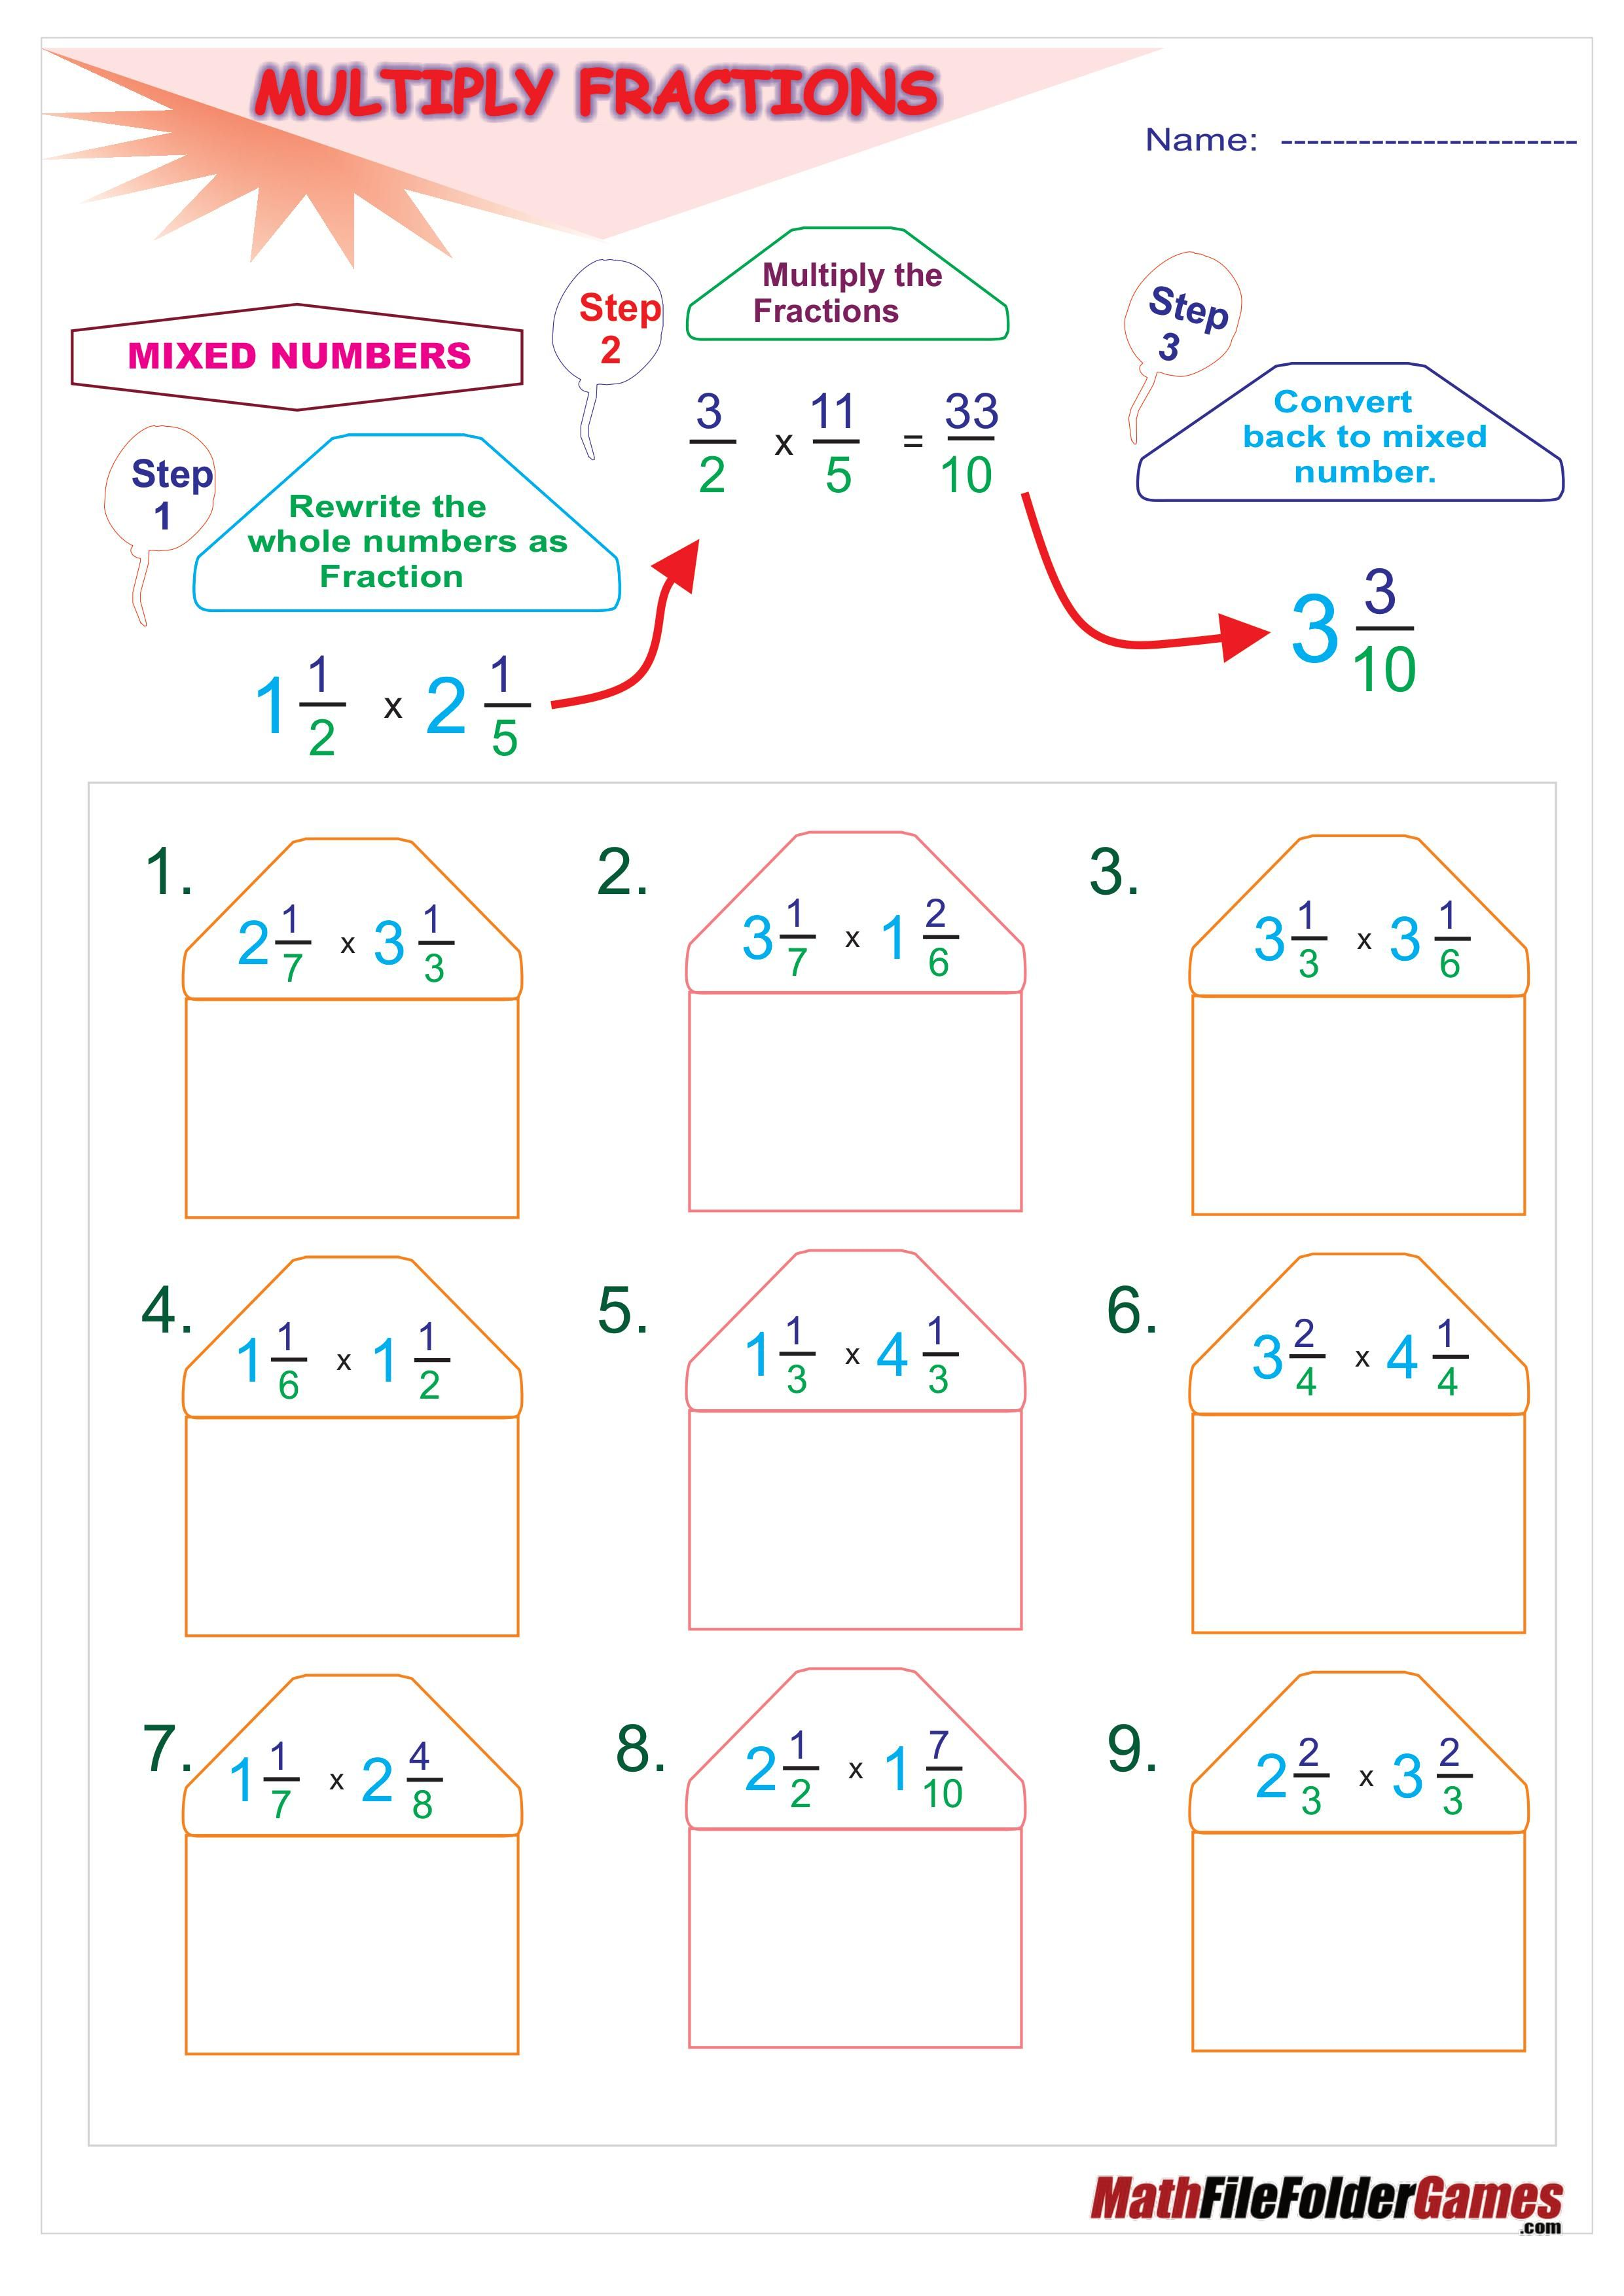 Multiply Fractions Poster By A Fraction Whole Number